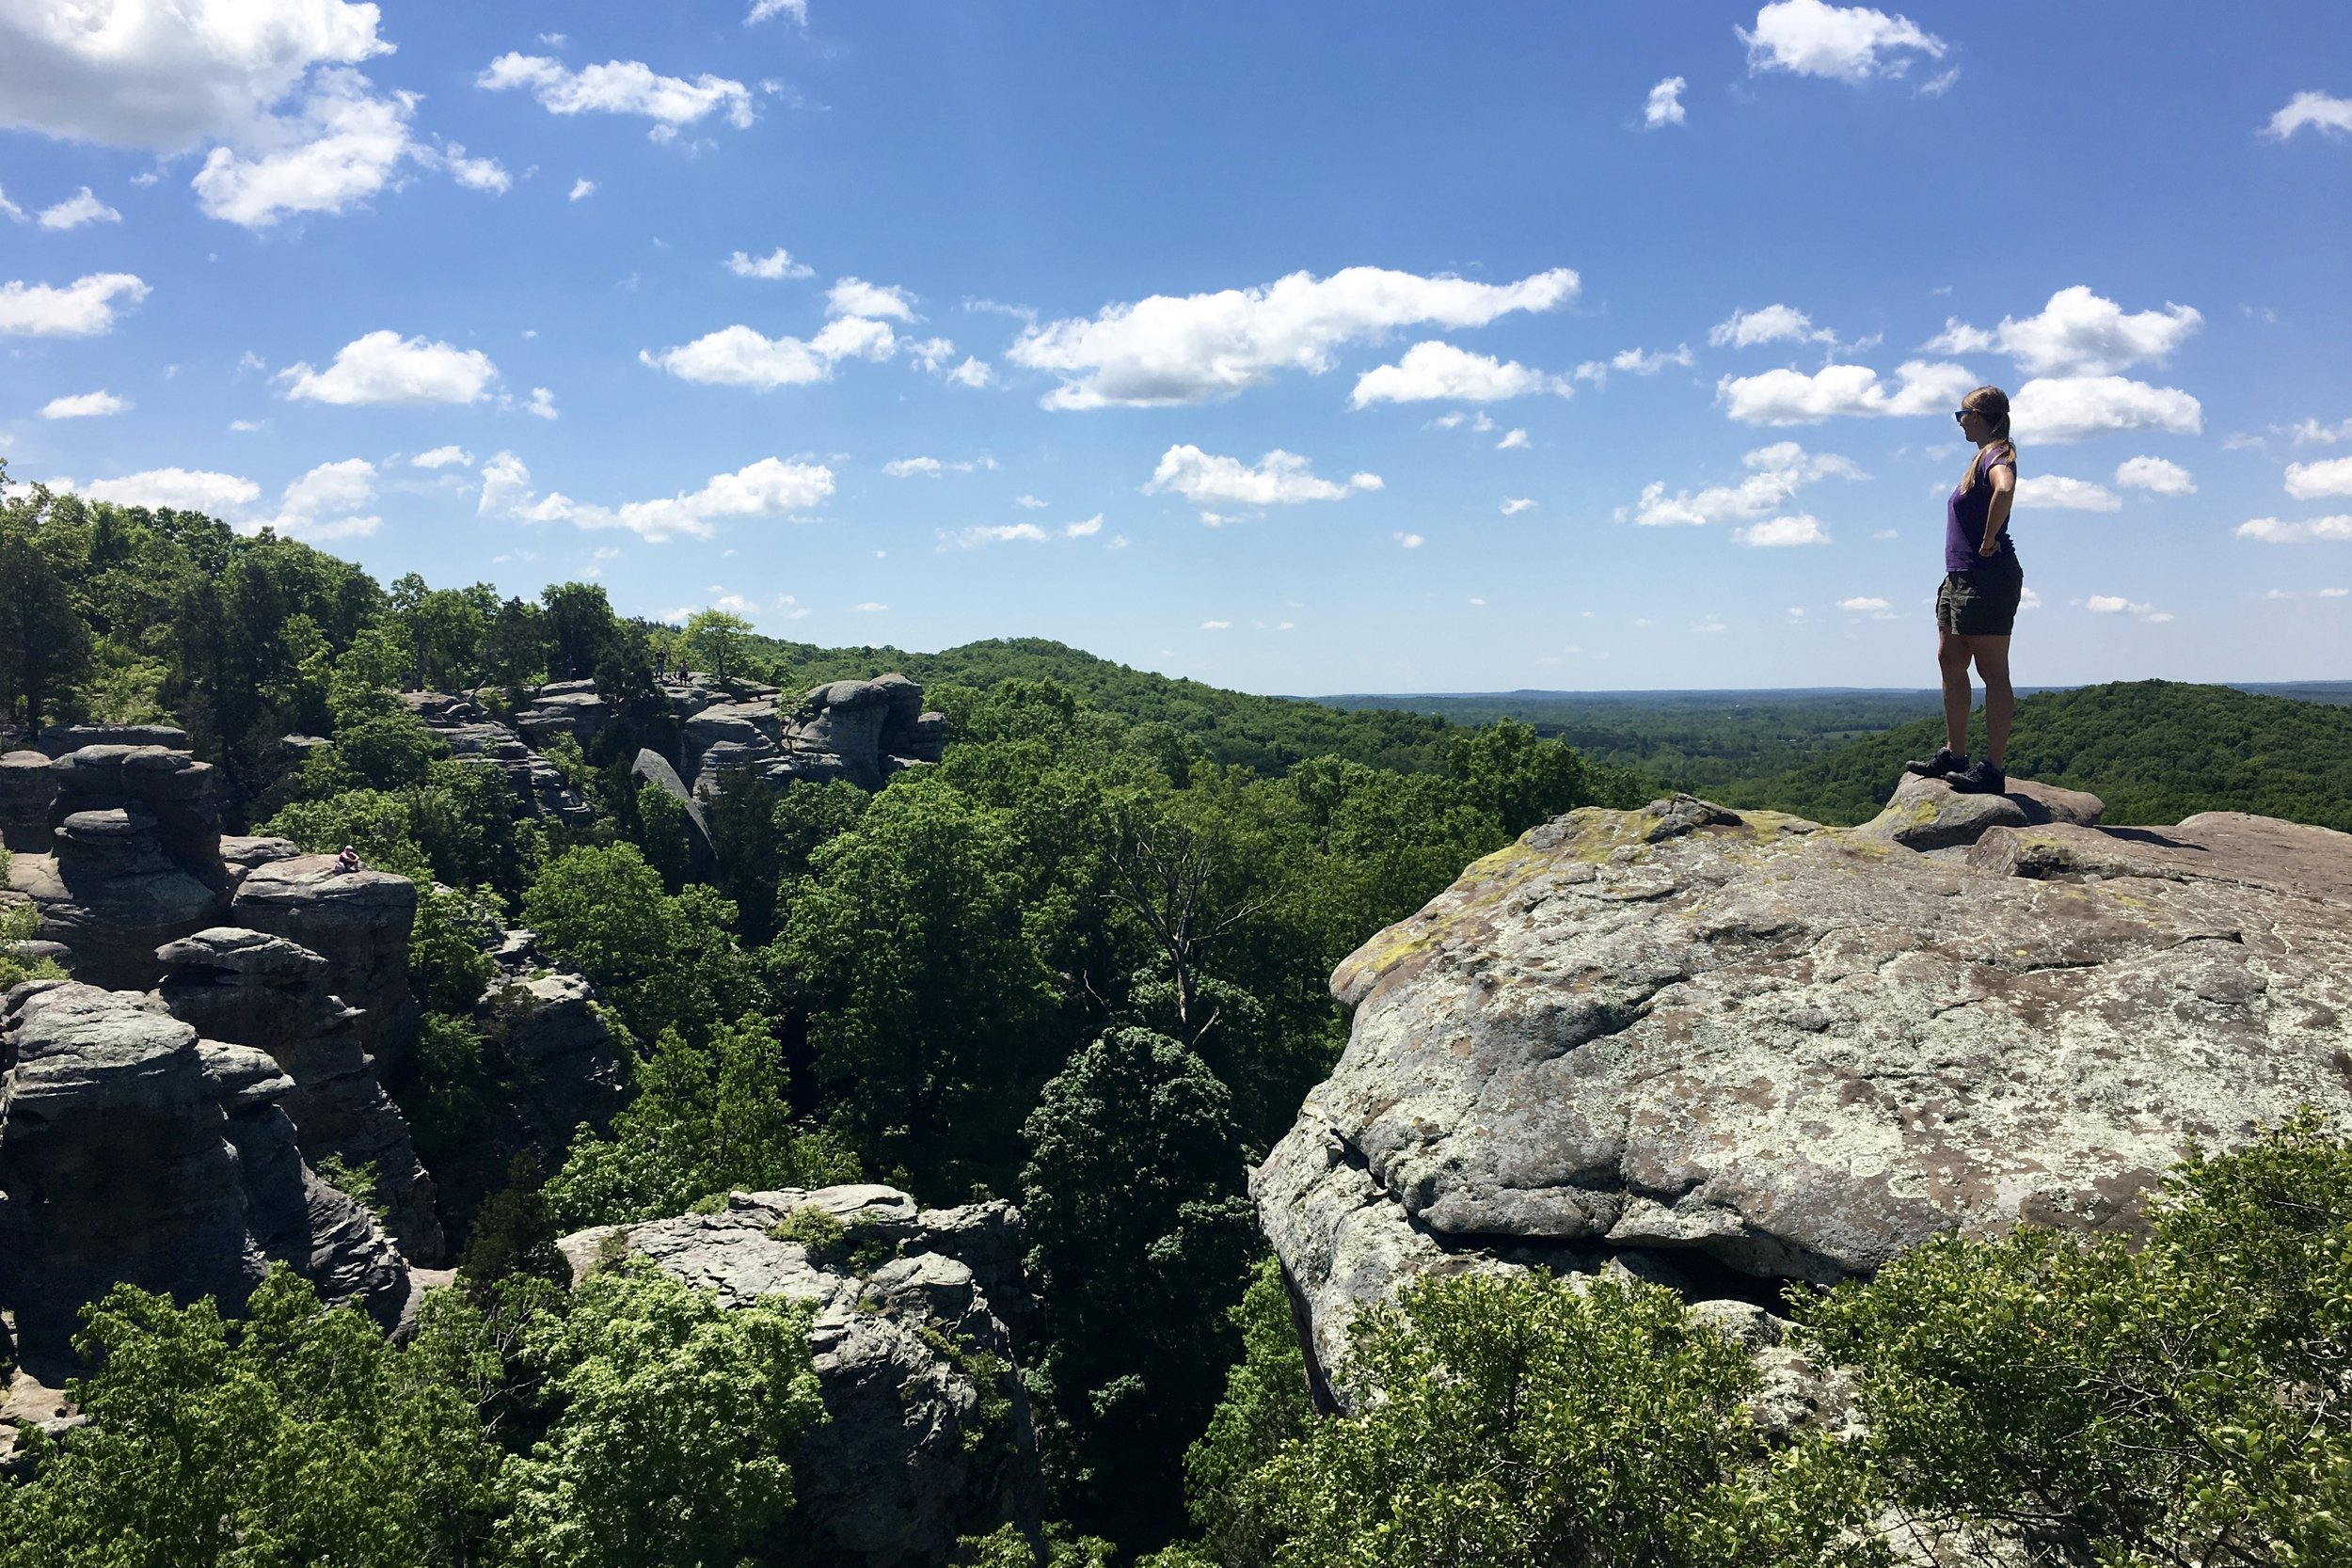 Here I am hiking at the Garden of the Gods in Shawnee National Forest in southern Illinois in May of 2017. The image of the rocks above is also from this trip.